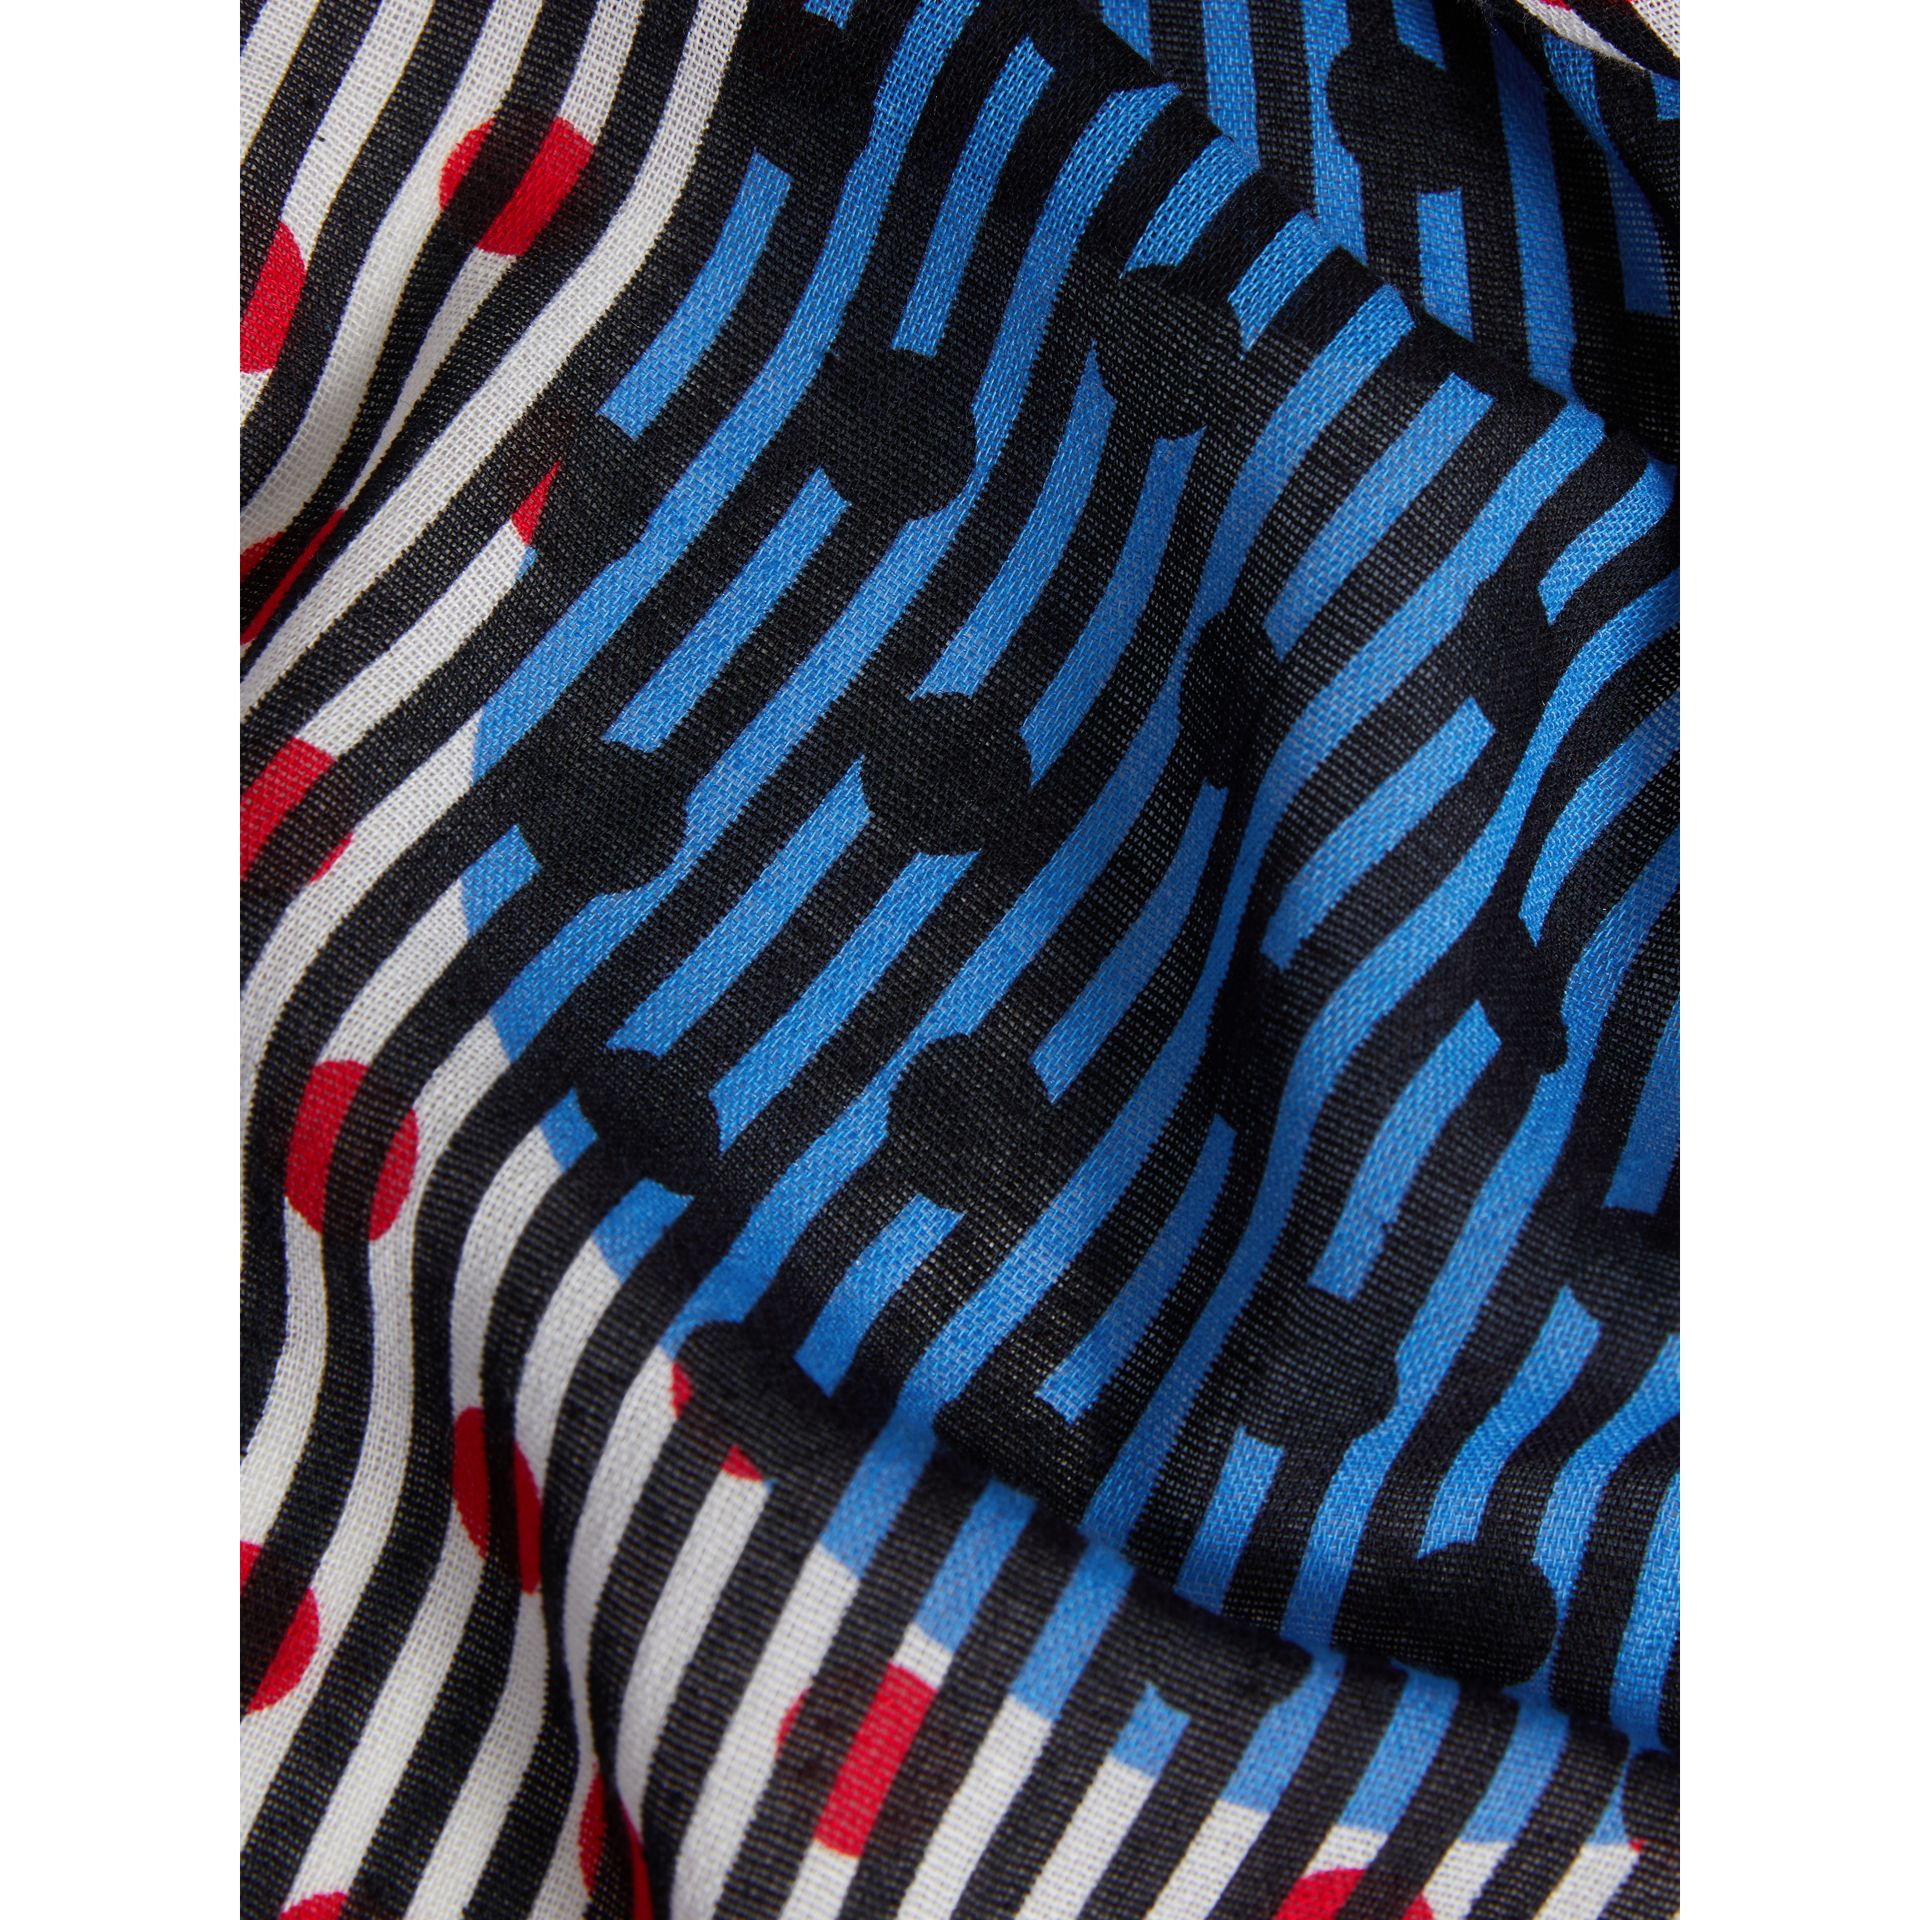 Graphic Spot and Stripe Print Silk Cotton Scarf in Azure Blue | Burberry Canada - gallery image 1